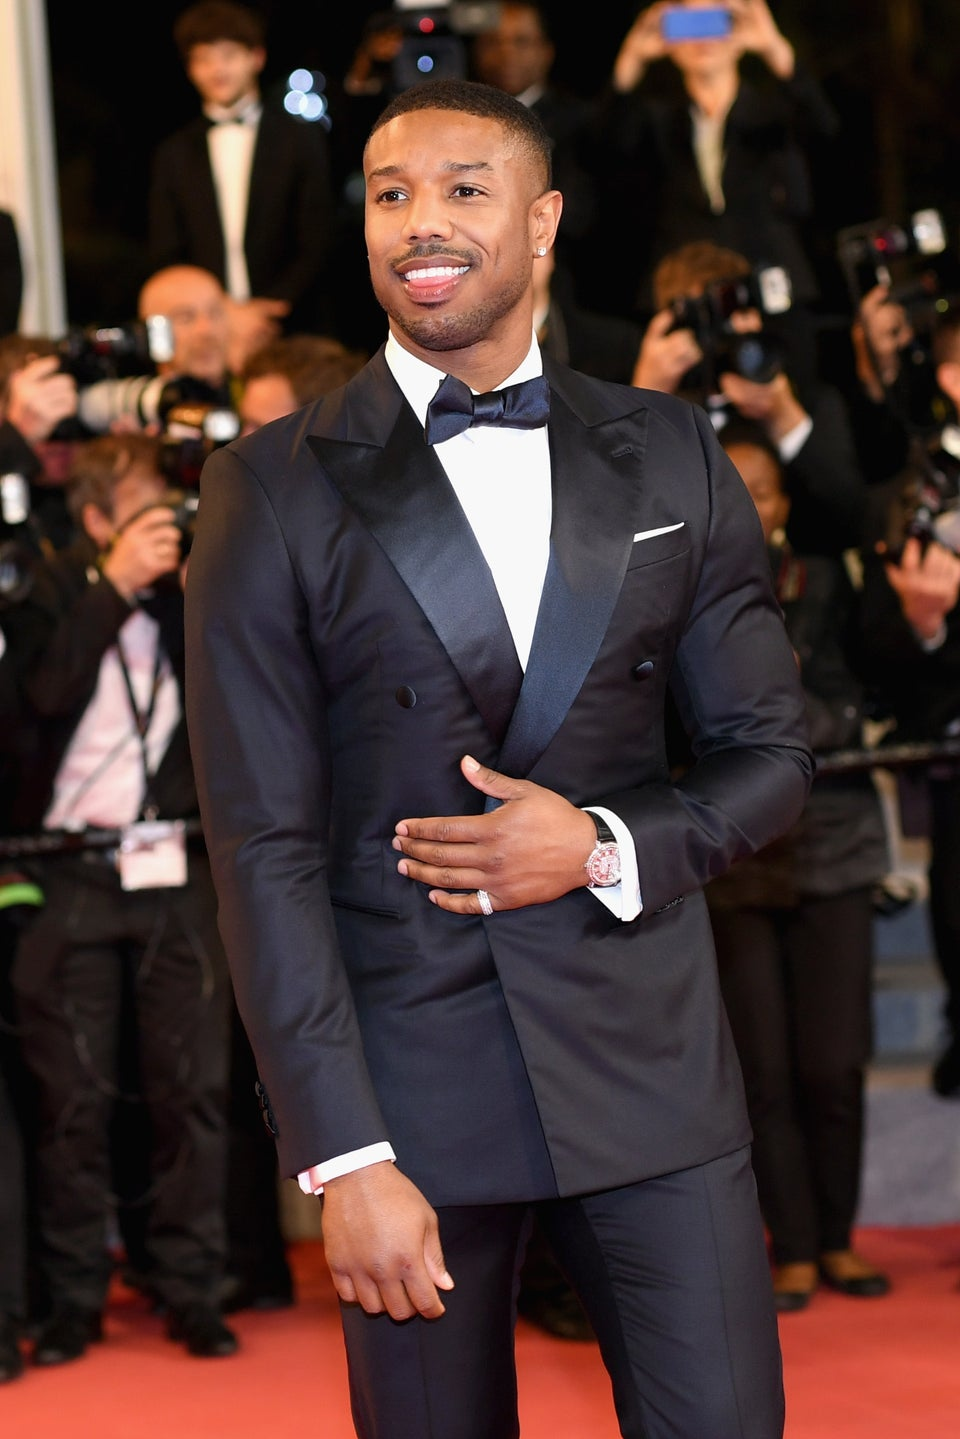 Michael B. Jordan Explains Why He Once Sought Out Roles Written Specifically For White Men